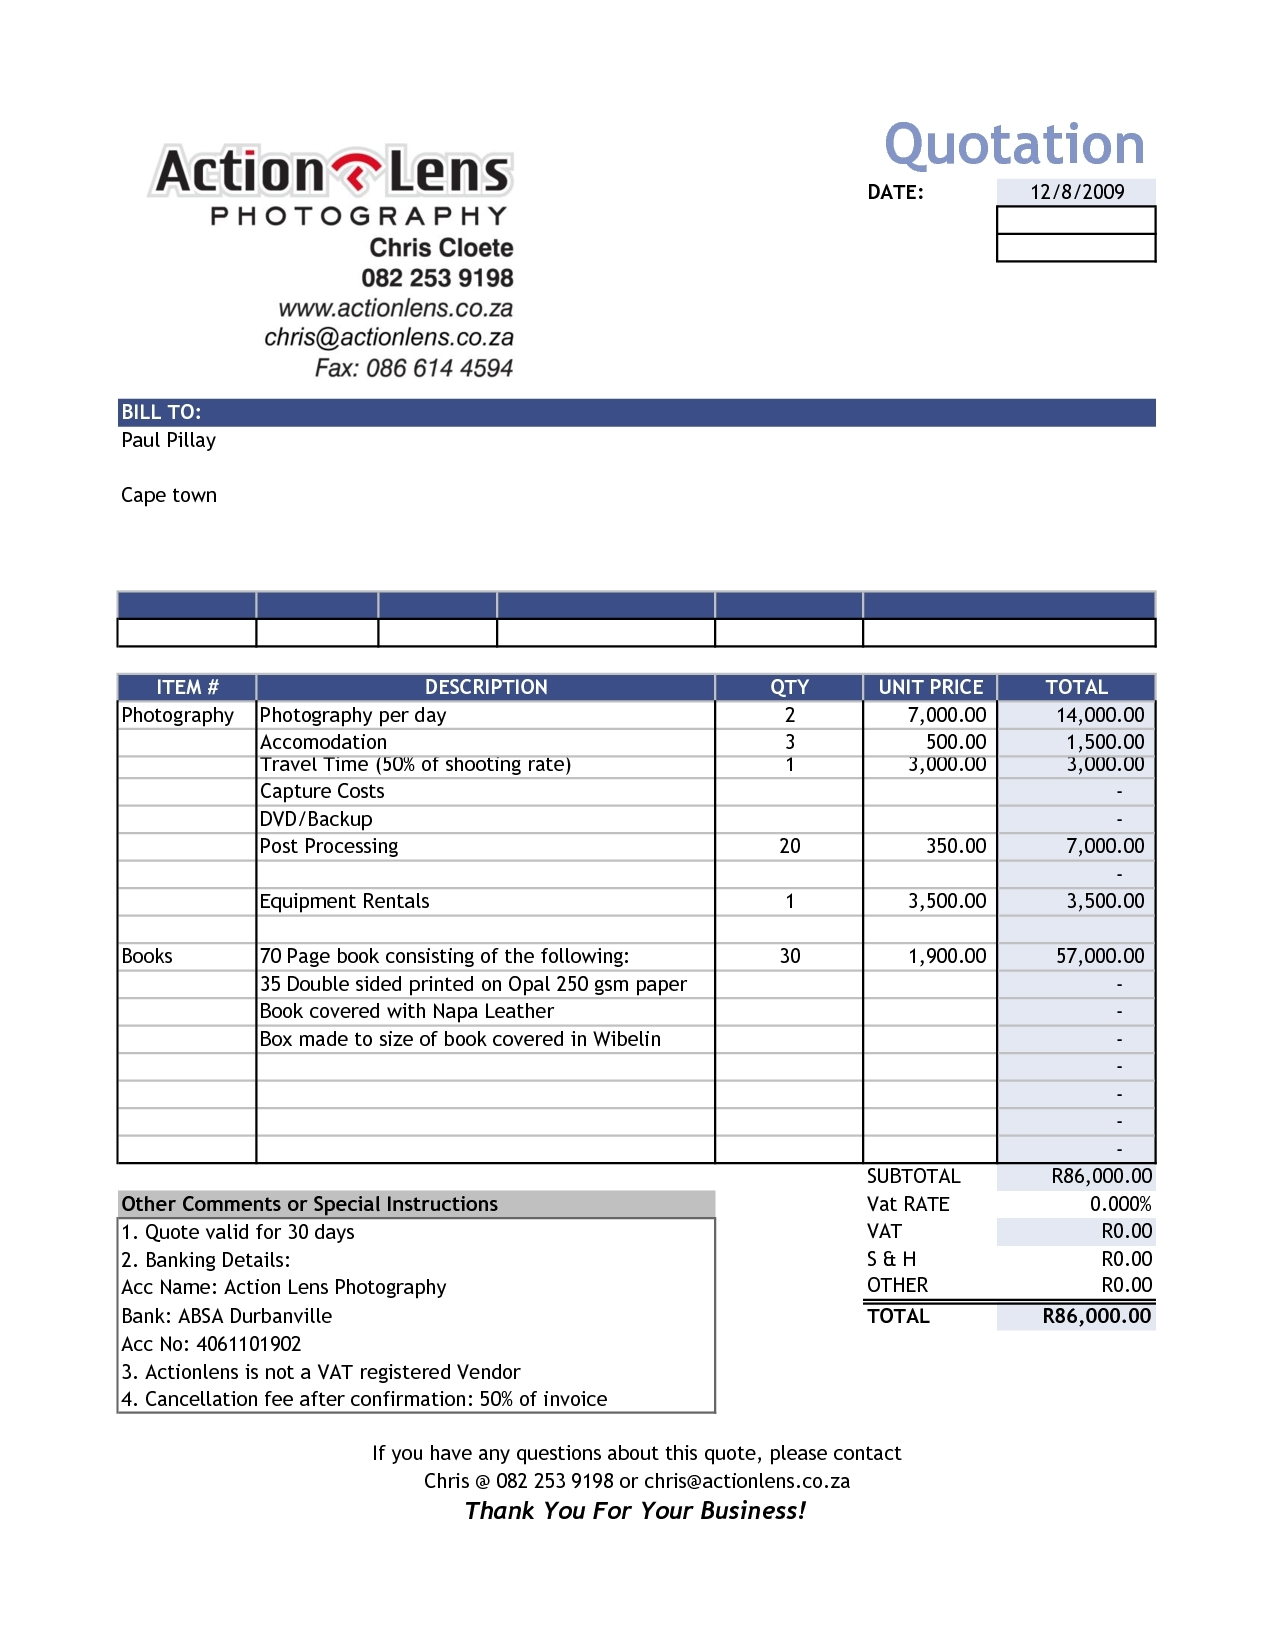 sale invoice format invoice template free 2016 sale invoice sample